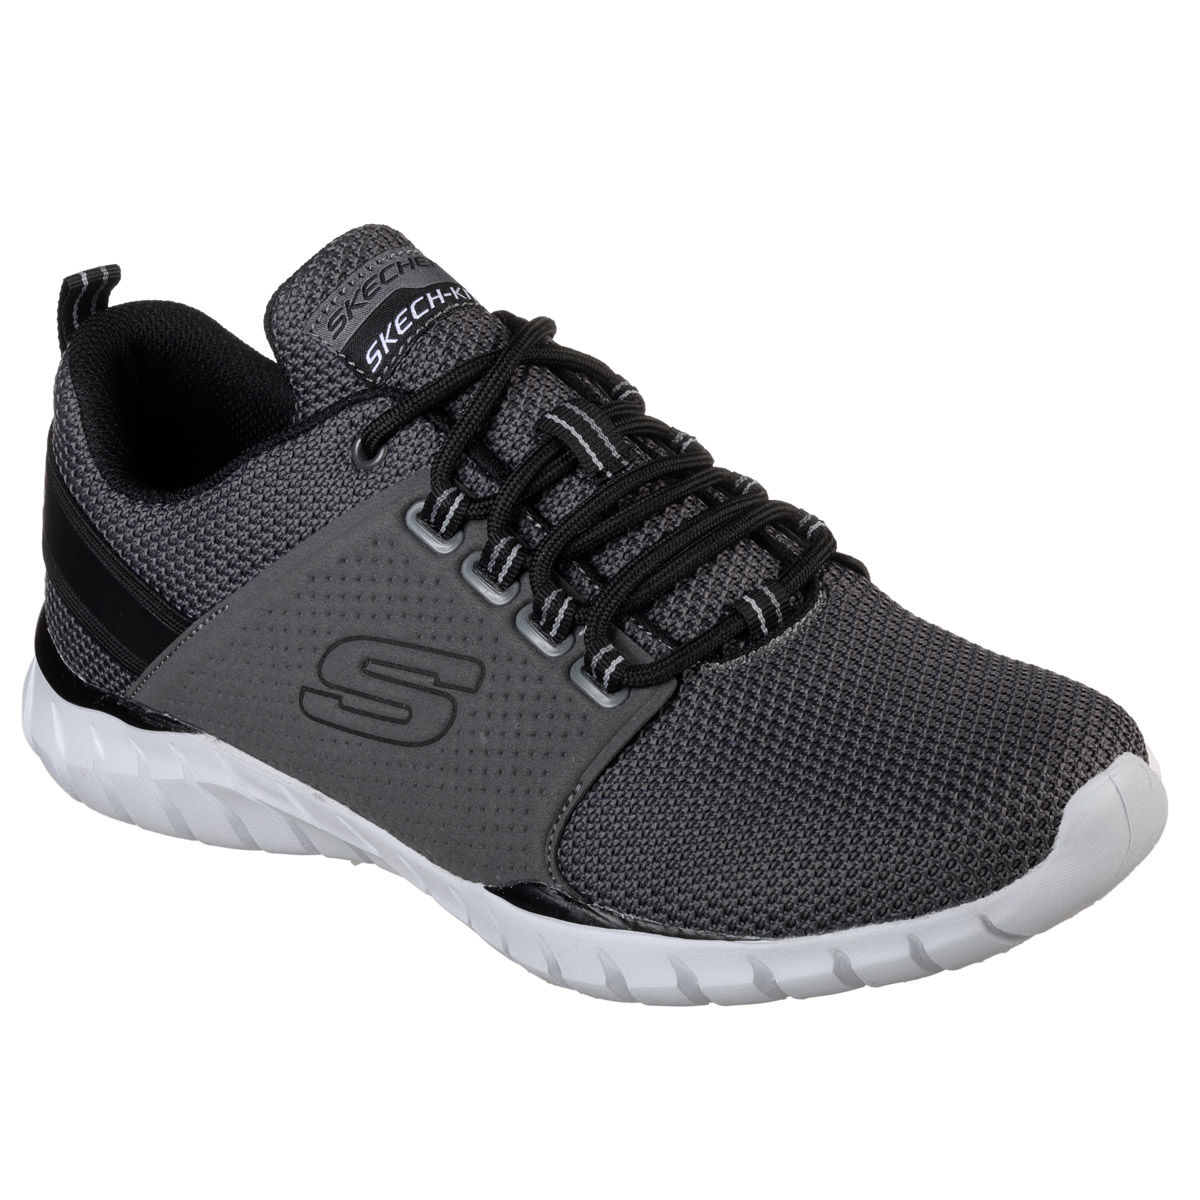 Skechers Overhaul Mens Walking Shoe